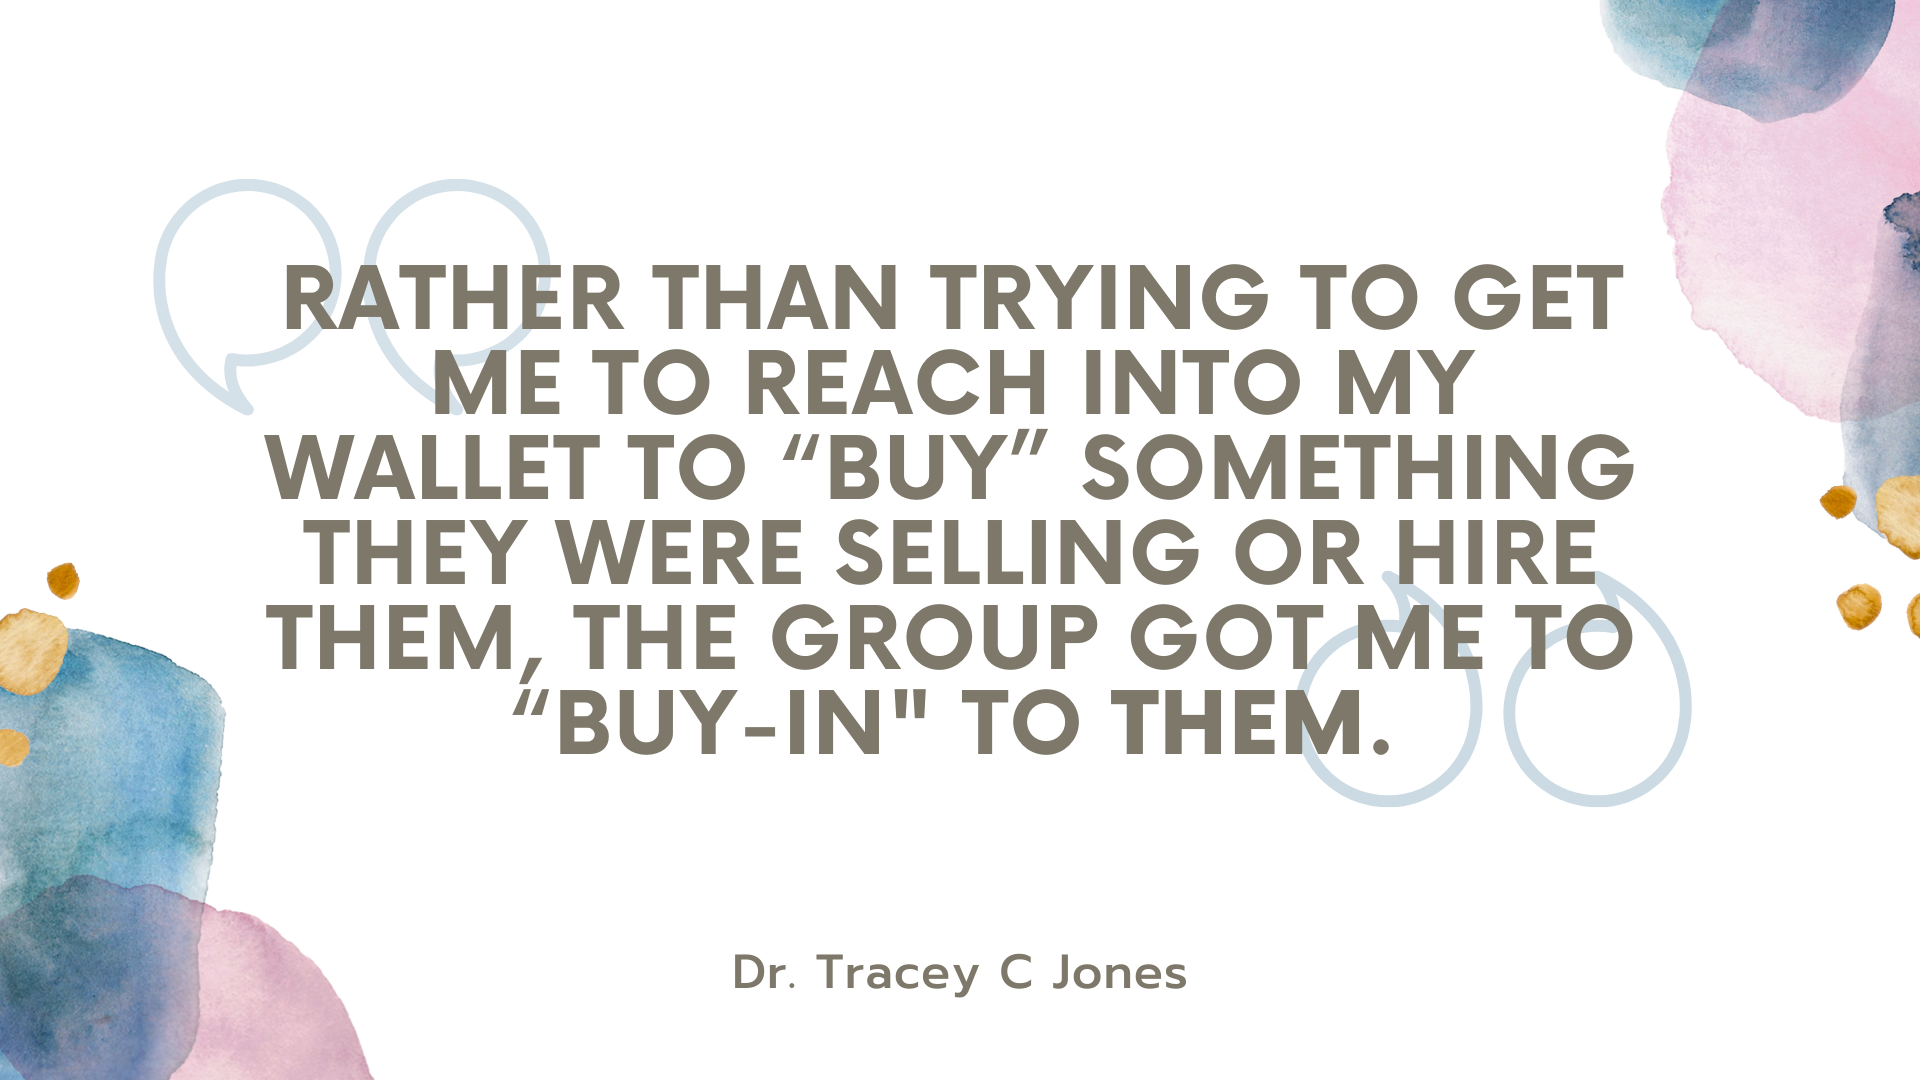 rather than trying to get me to reach into my wallet to buy something they were selling or hire them the group got me to buy in to them. dr. tracey c jones